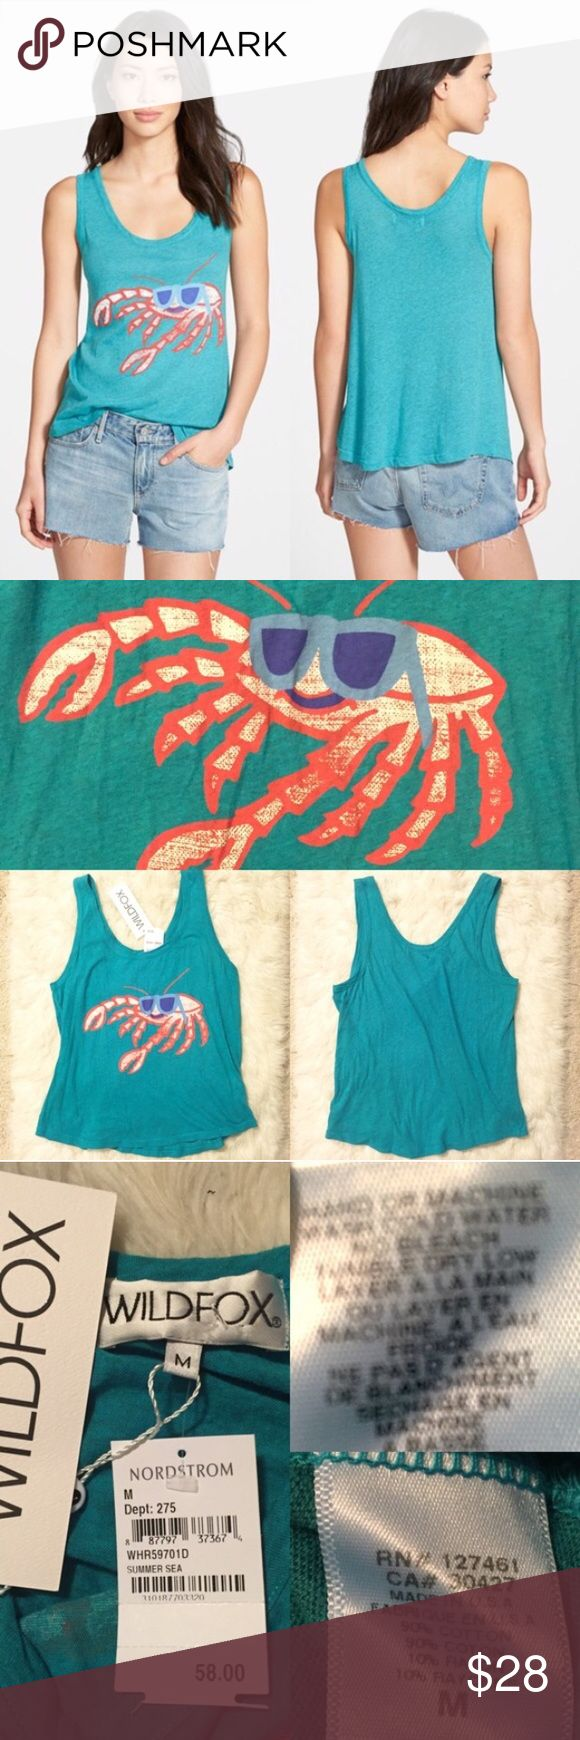 """NWT Wildfox Cool Crab Tank Brand new with tags authentic Wildfox tank. A sunglass-clad crab gets pinchy with it on the front of a scoop-neck tank knit from a heathered cotton blend. Approx 25"""" length, 20"""" across bus. Size Medium. 90% cotton, 10% rayon. Hand wash cold, tumble dry low. By Wildfox; made in the USA. Model photo credit Nordstrom. ❌No trades❌Price firm unless bundled. Wildfox Tops Tank Tops"""